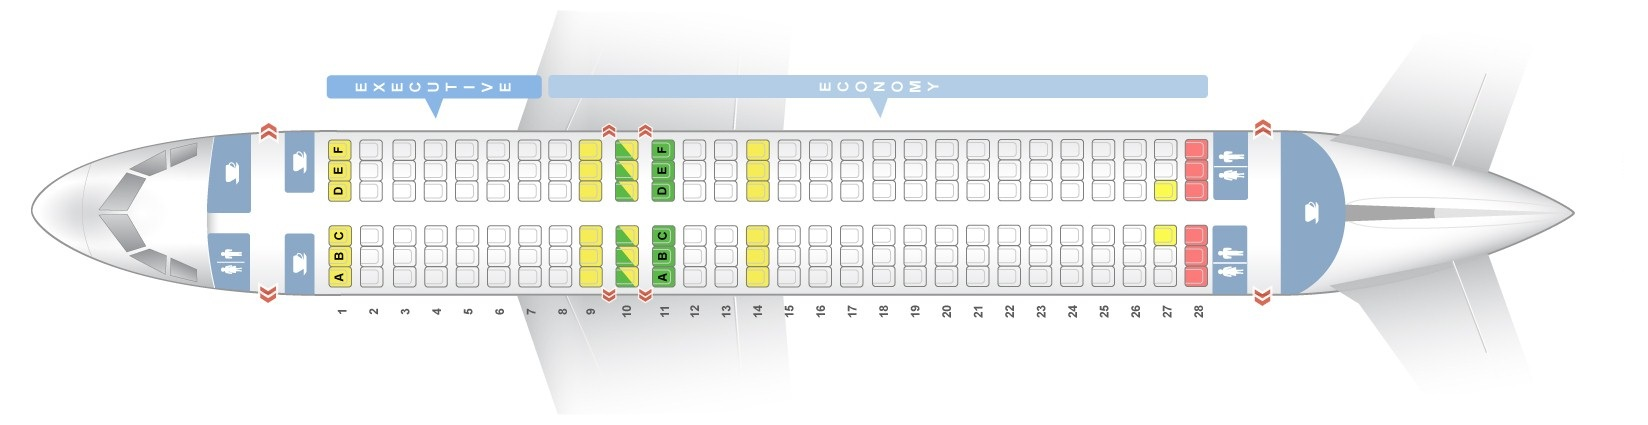 Seat map Airbus A320-200 TAP Portugal. Best seats in the plane